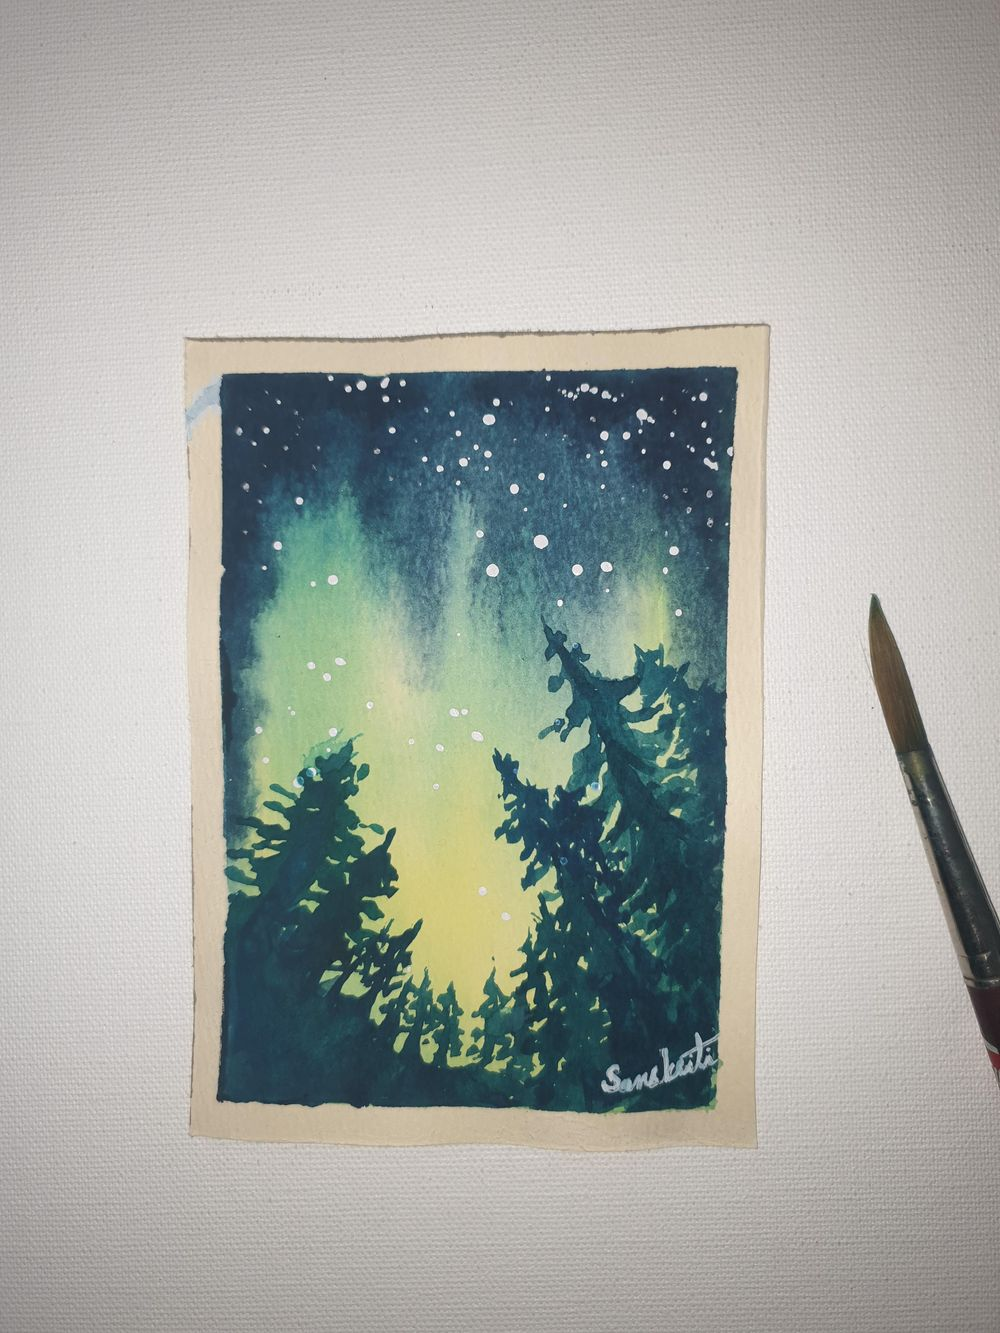 Northern lights - image 2 - student project